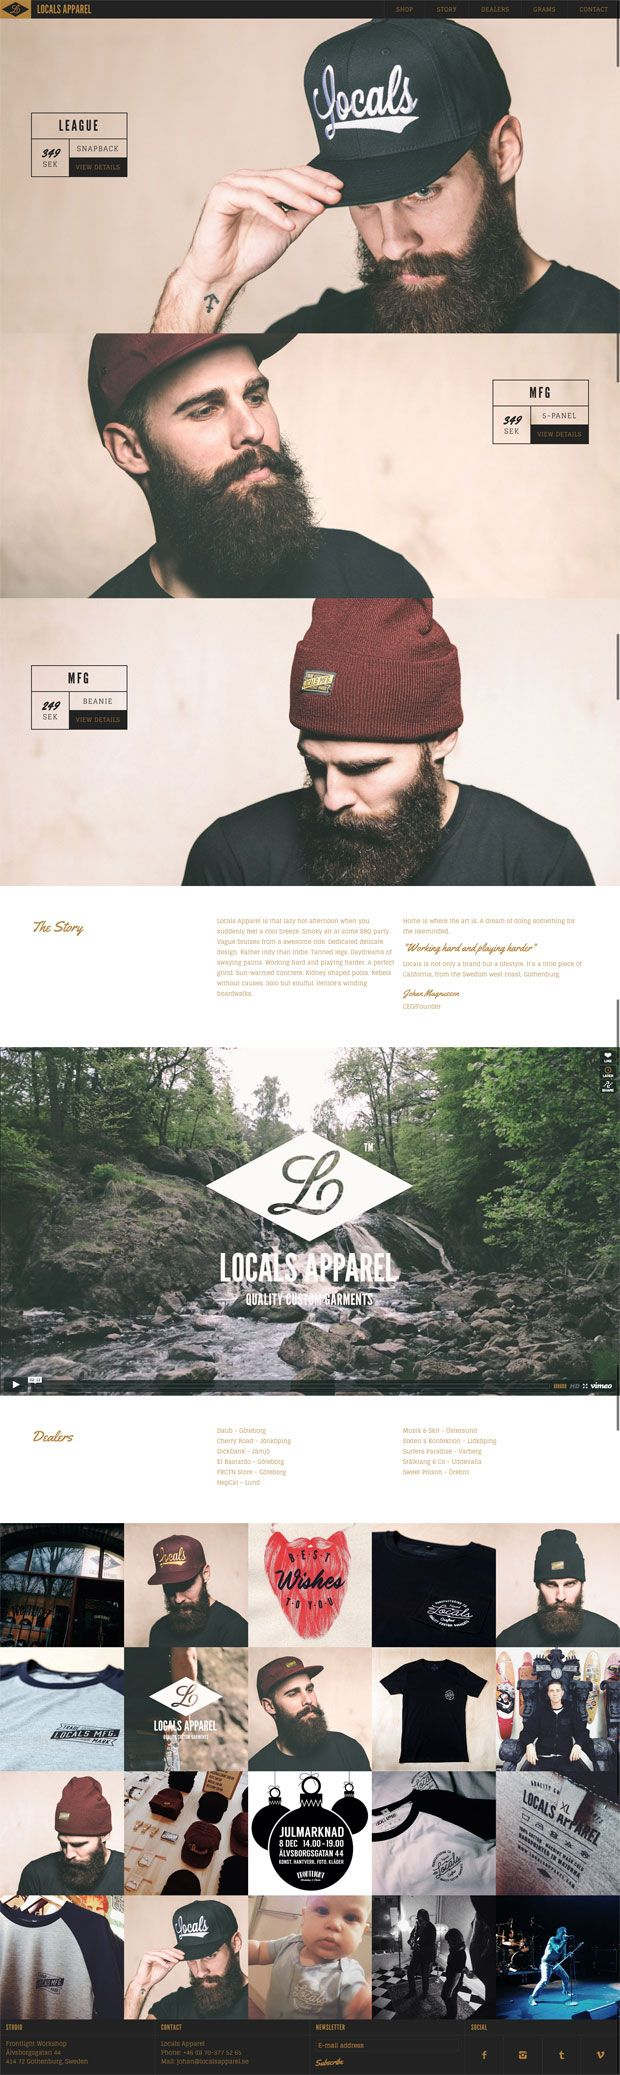 Have your bearded hipster card ready when you try to purchase anything on the Locals Apparel website. They will not sell to the un-bearded mainstream.